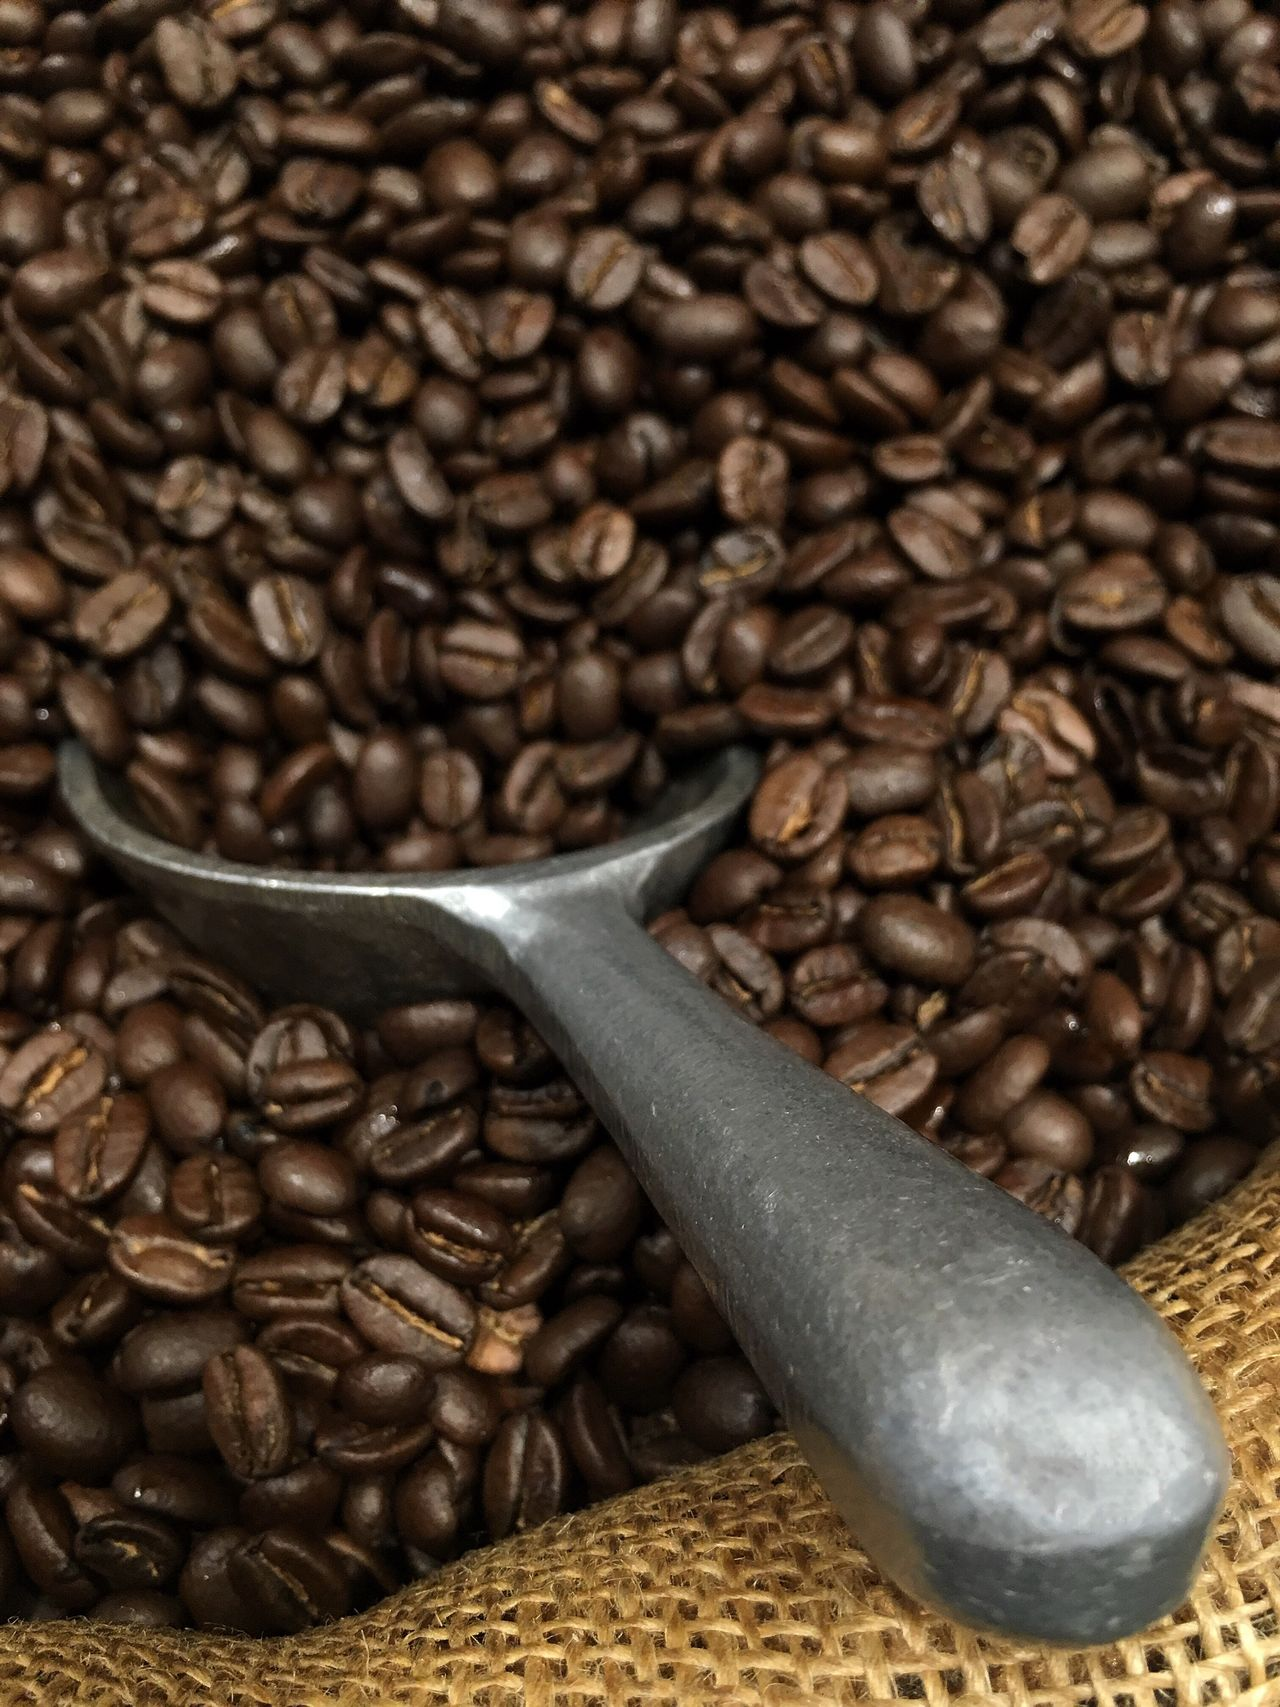 Roasted Coffee Bean Brown Close-up Group Of Objects Full Frame Food And Drink Freshness No People Serving Scoop Coffee Bean Indoors